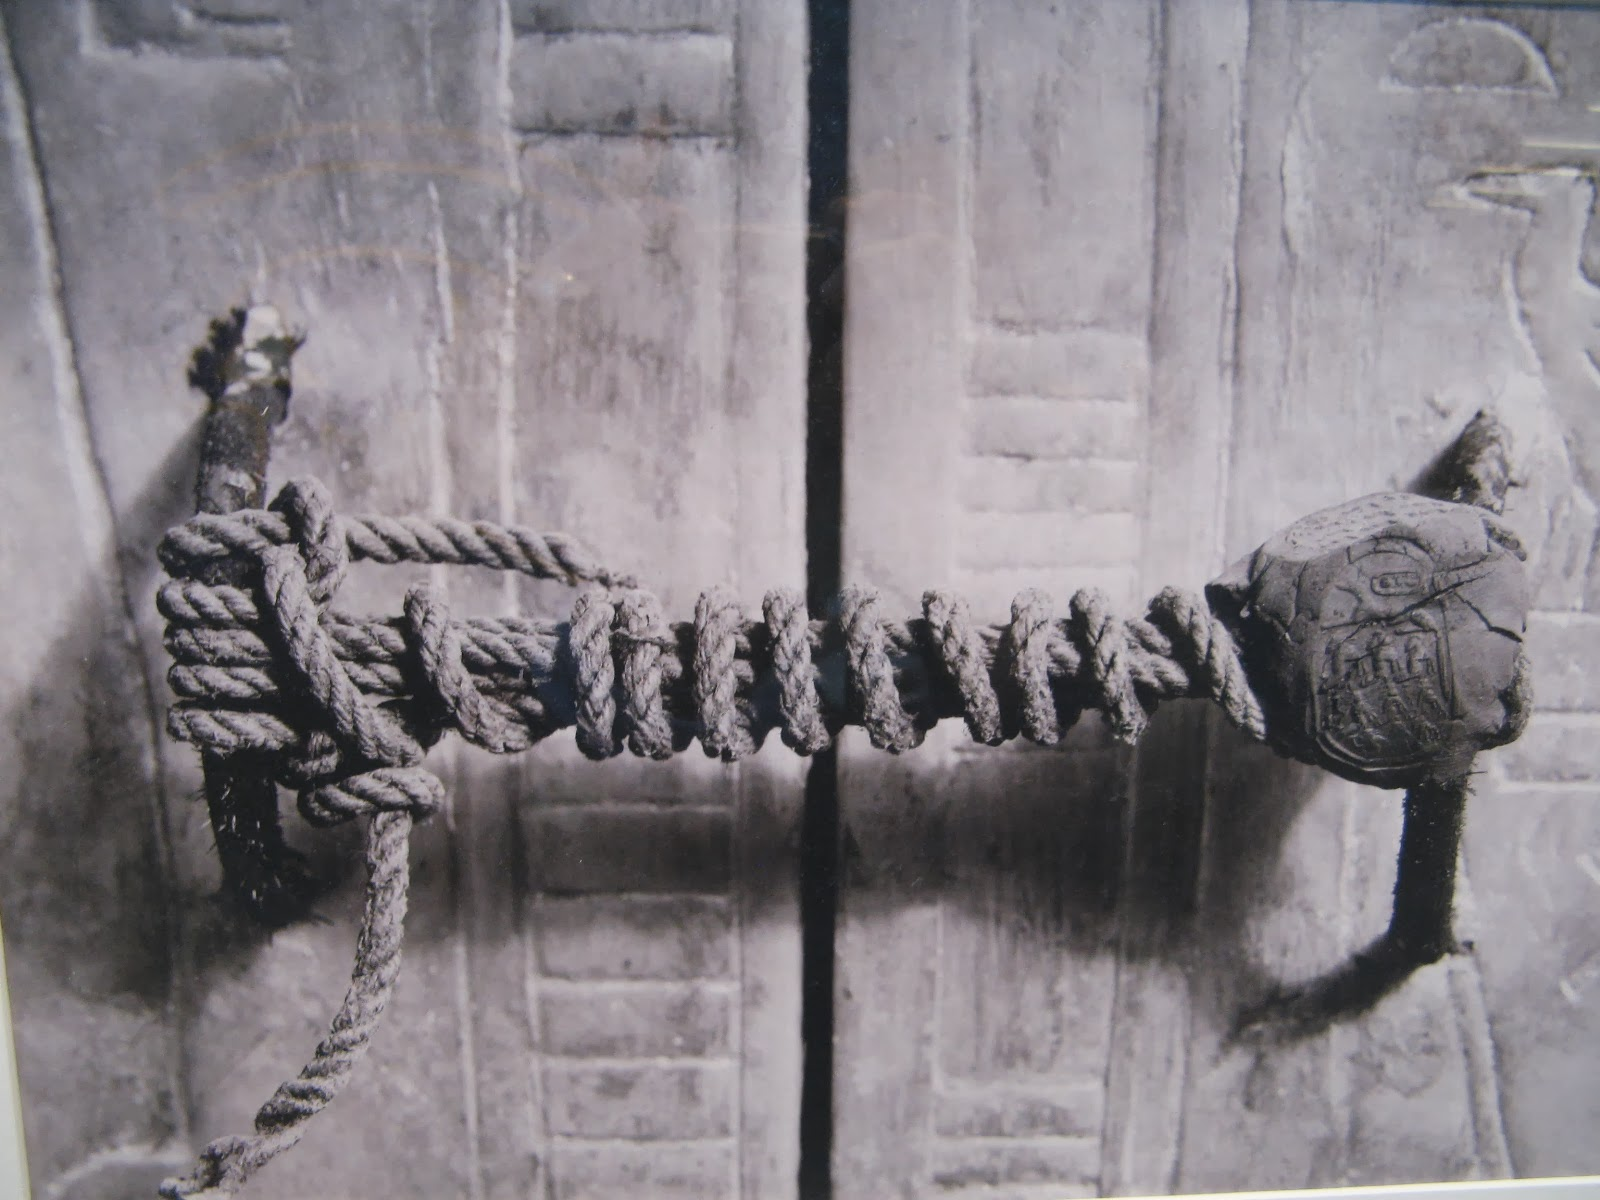 The unbroken seal on King's Tut' tomb